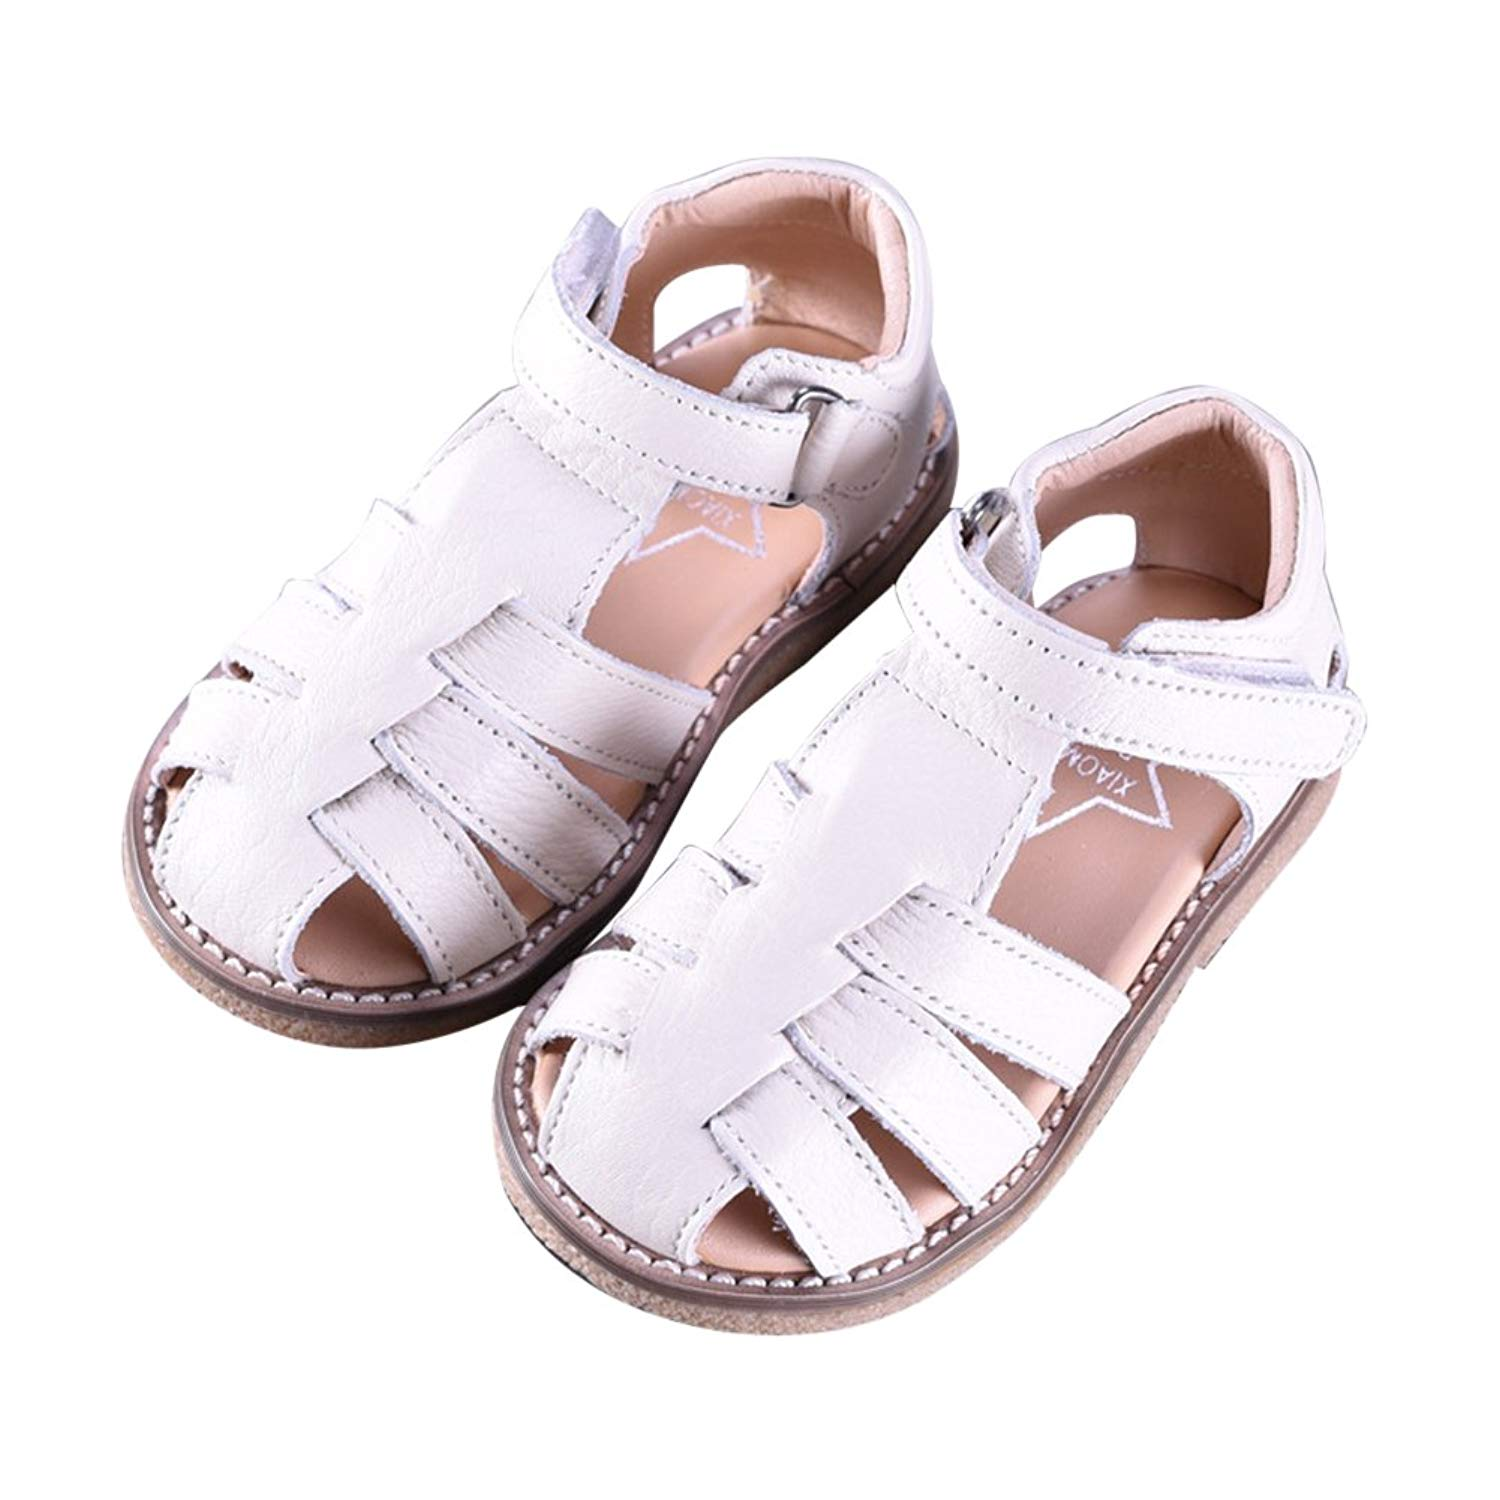 Mubeuo Skidproof Leather Toddler Kids Summer Sandals for Girls Sandles